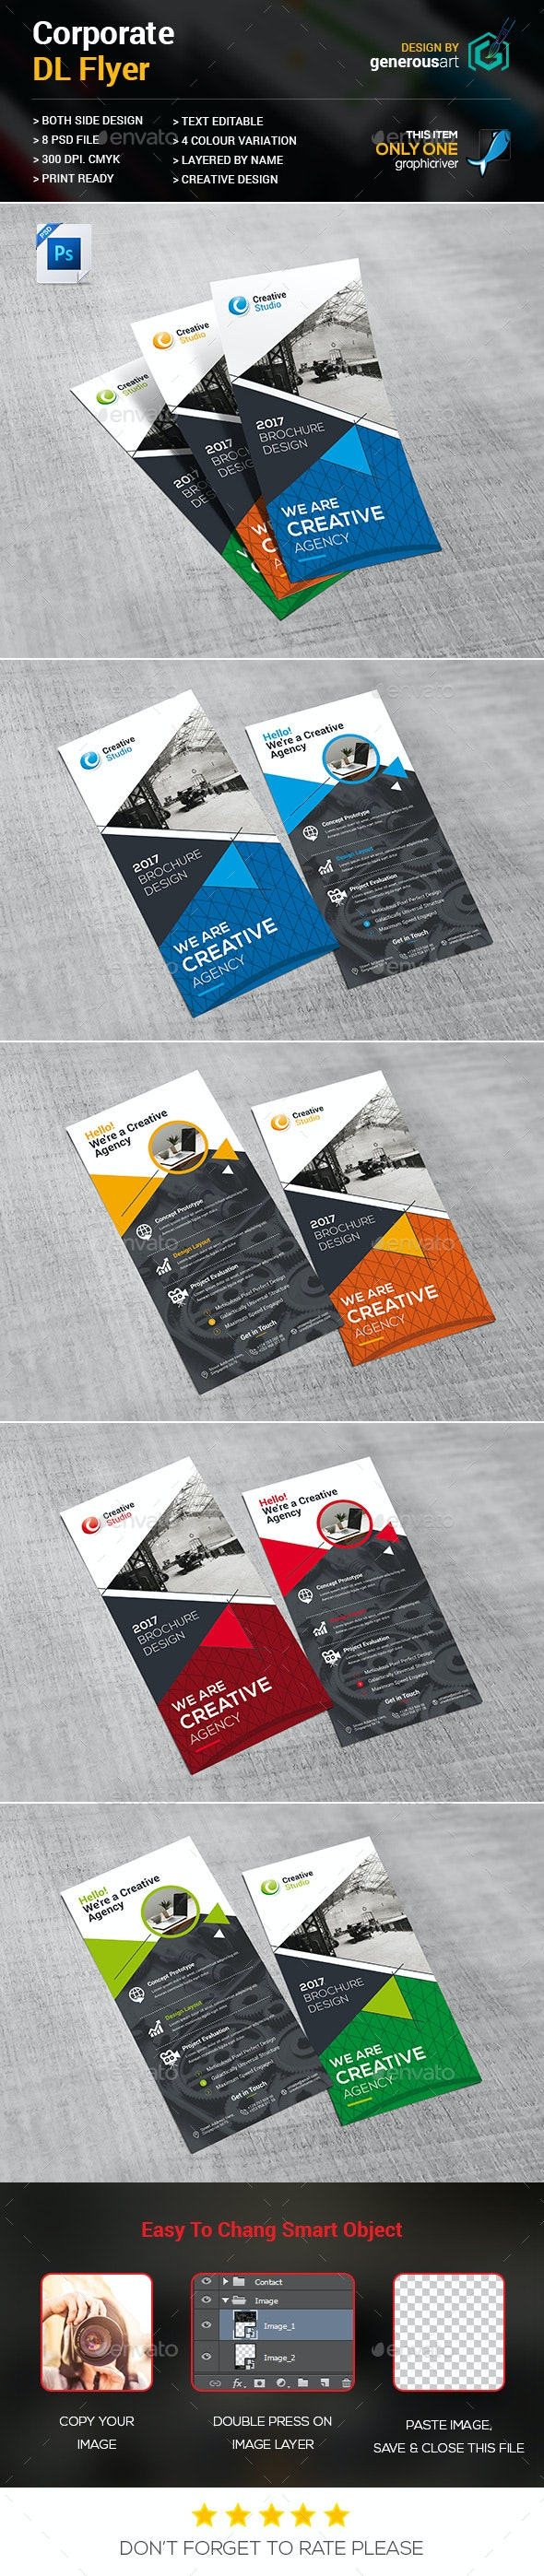 DL Flyer - Corporate Flyers